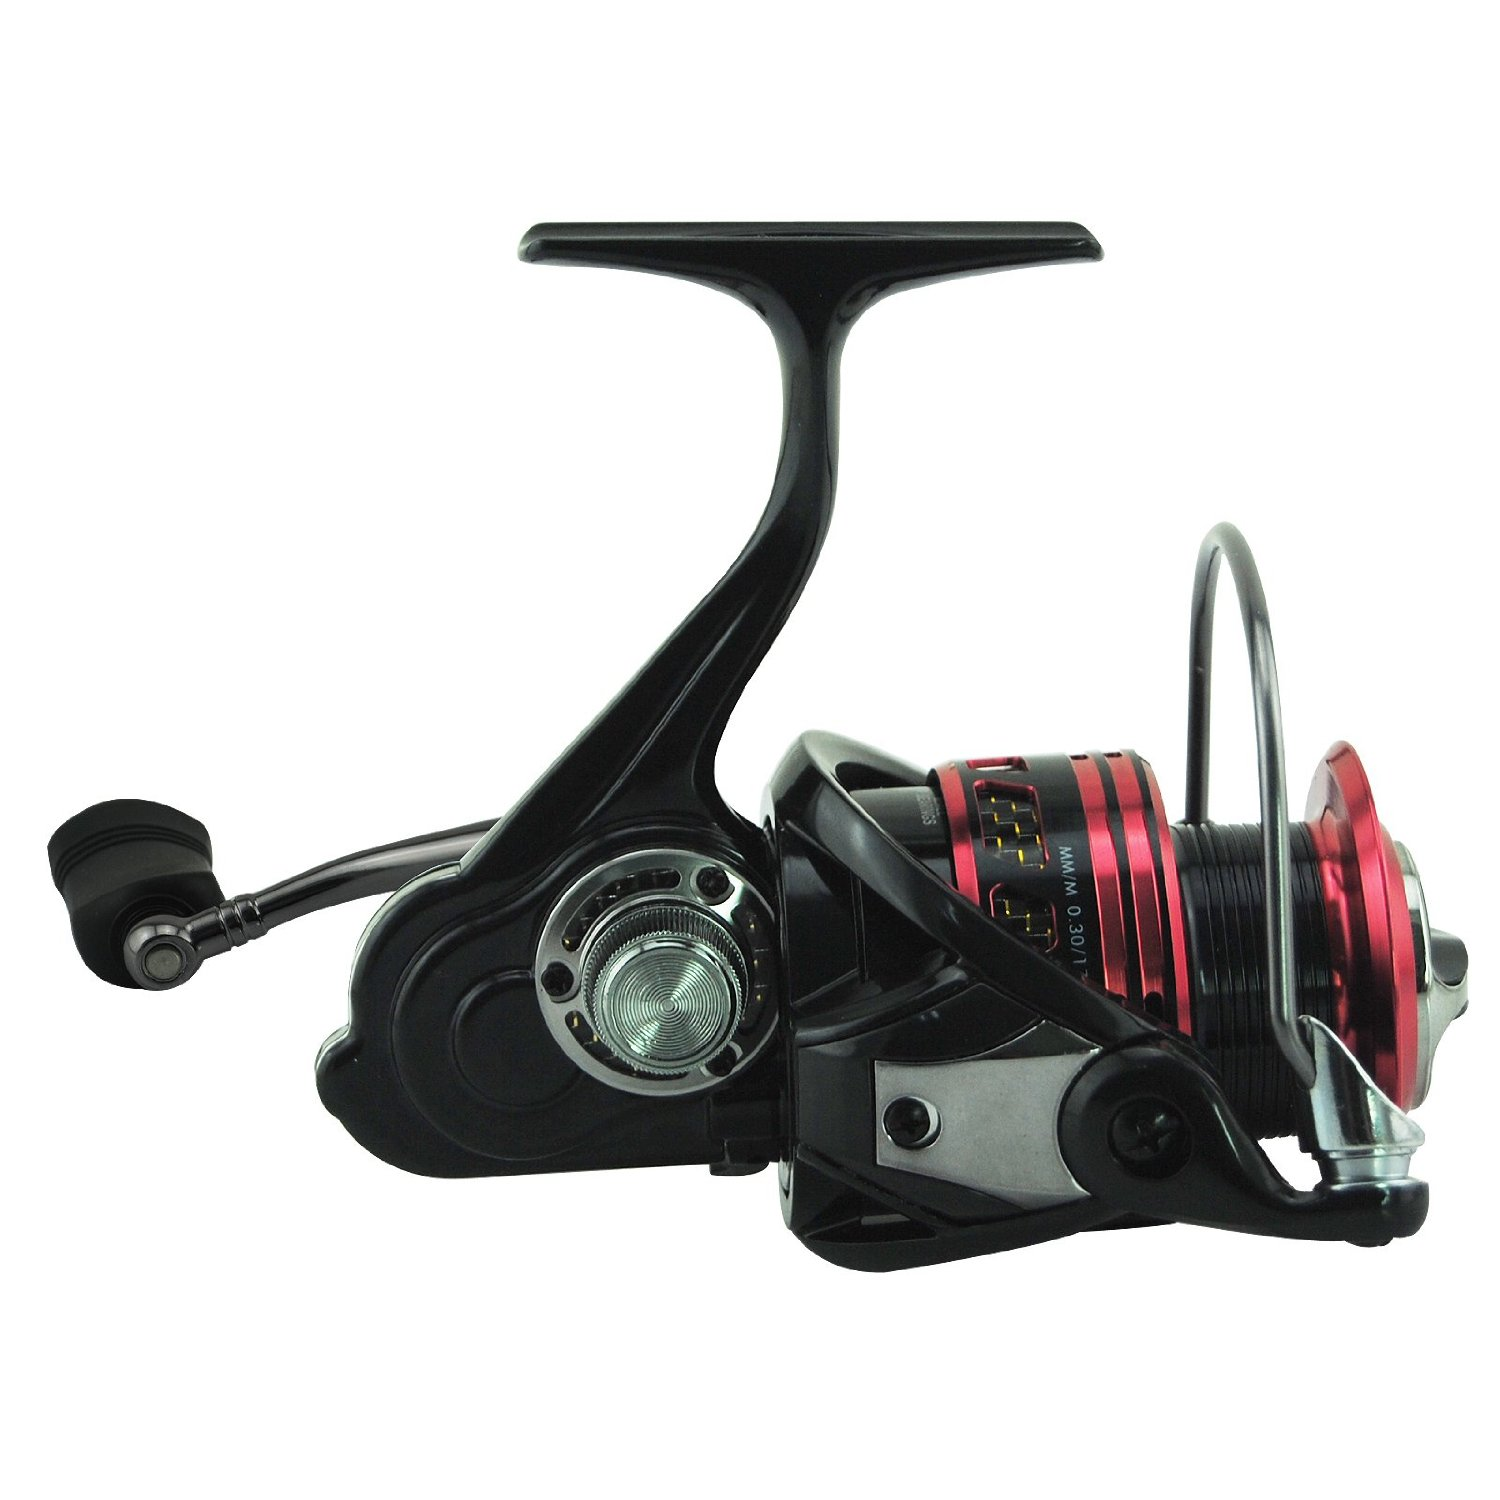 eposeidon introduces kastking orcas spinning reels Orcas spinning reels by kastking is a powerful spinning reel with unique features in a lightweight package eposeidon introduces kastking orcas spinning reels.